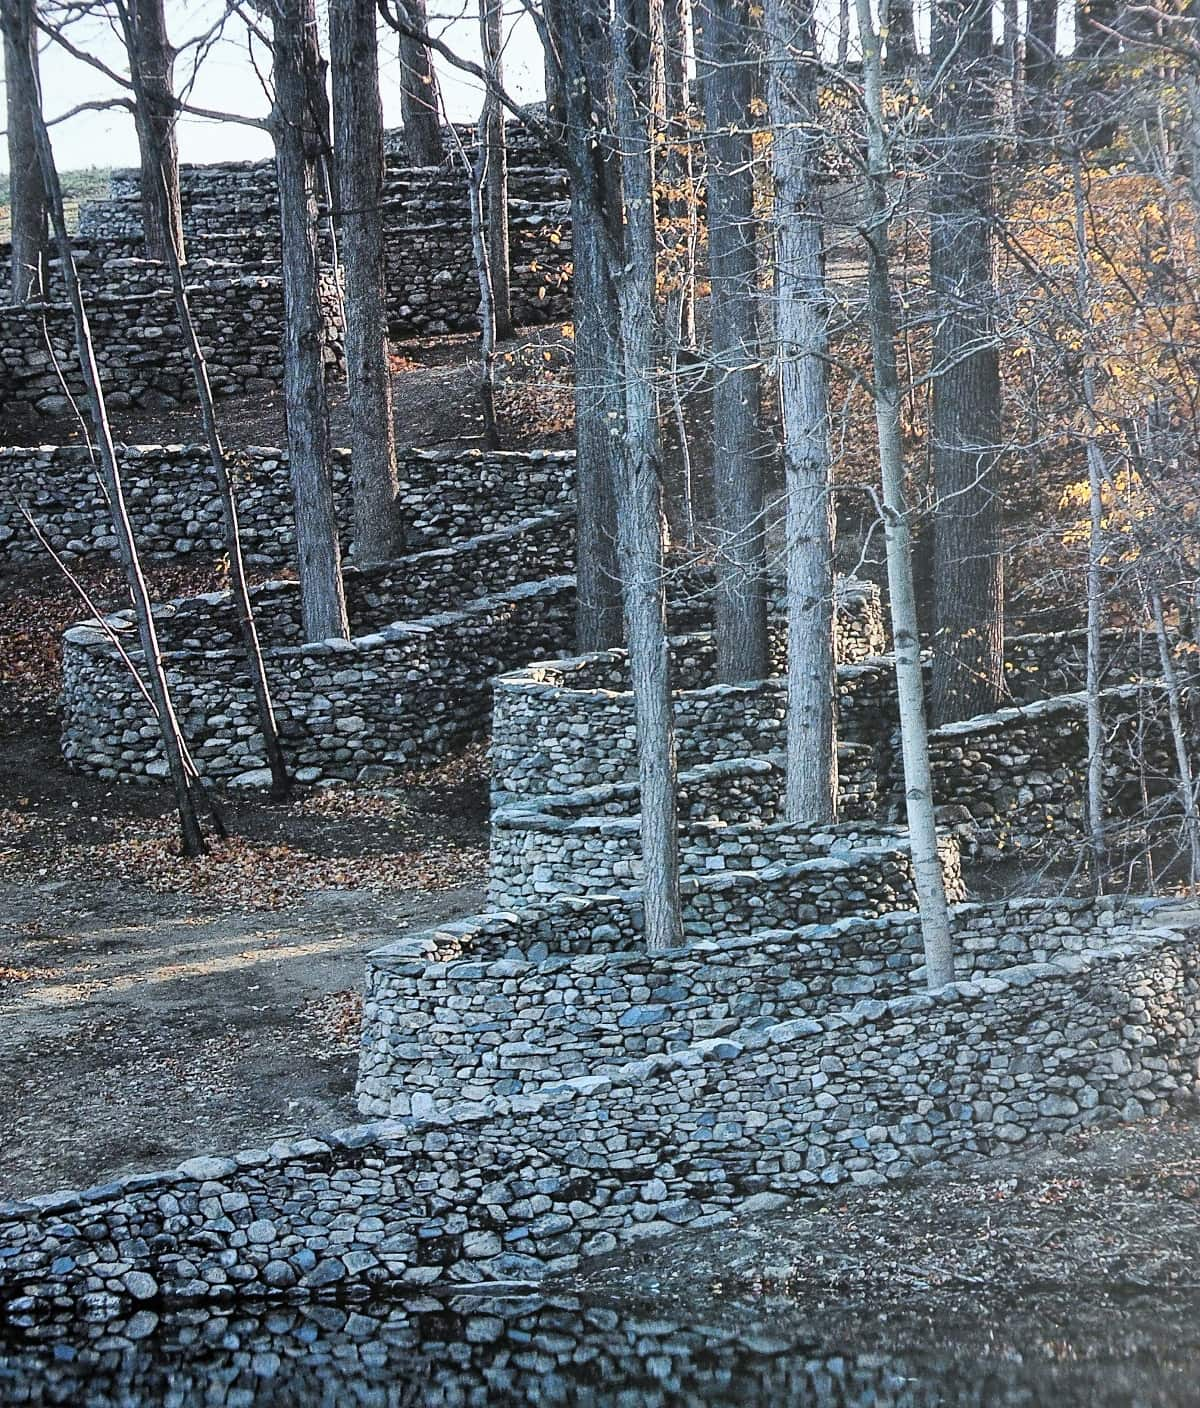 """The Storm King Wall"" by Andy Goldsworthy featured in Thomas A Clark's ""In Praise of Walking"" in the Examined Life Library."